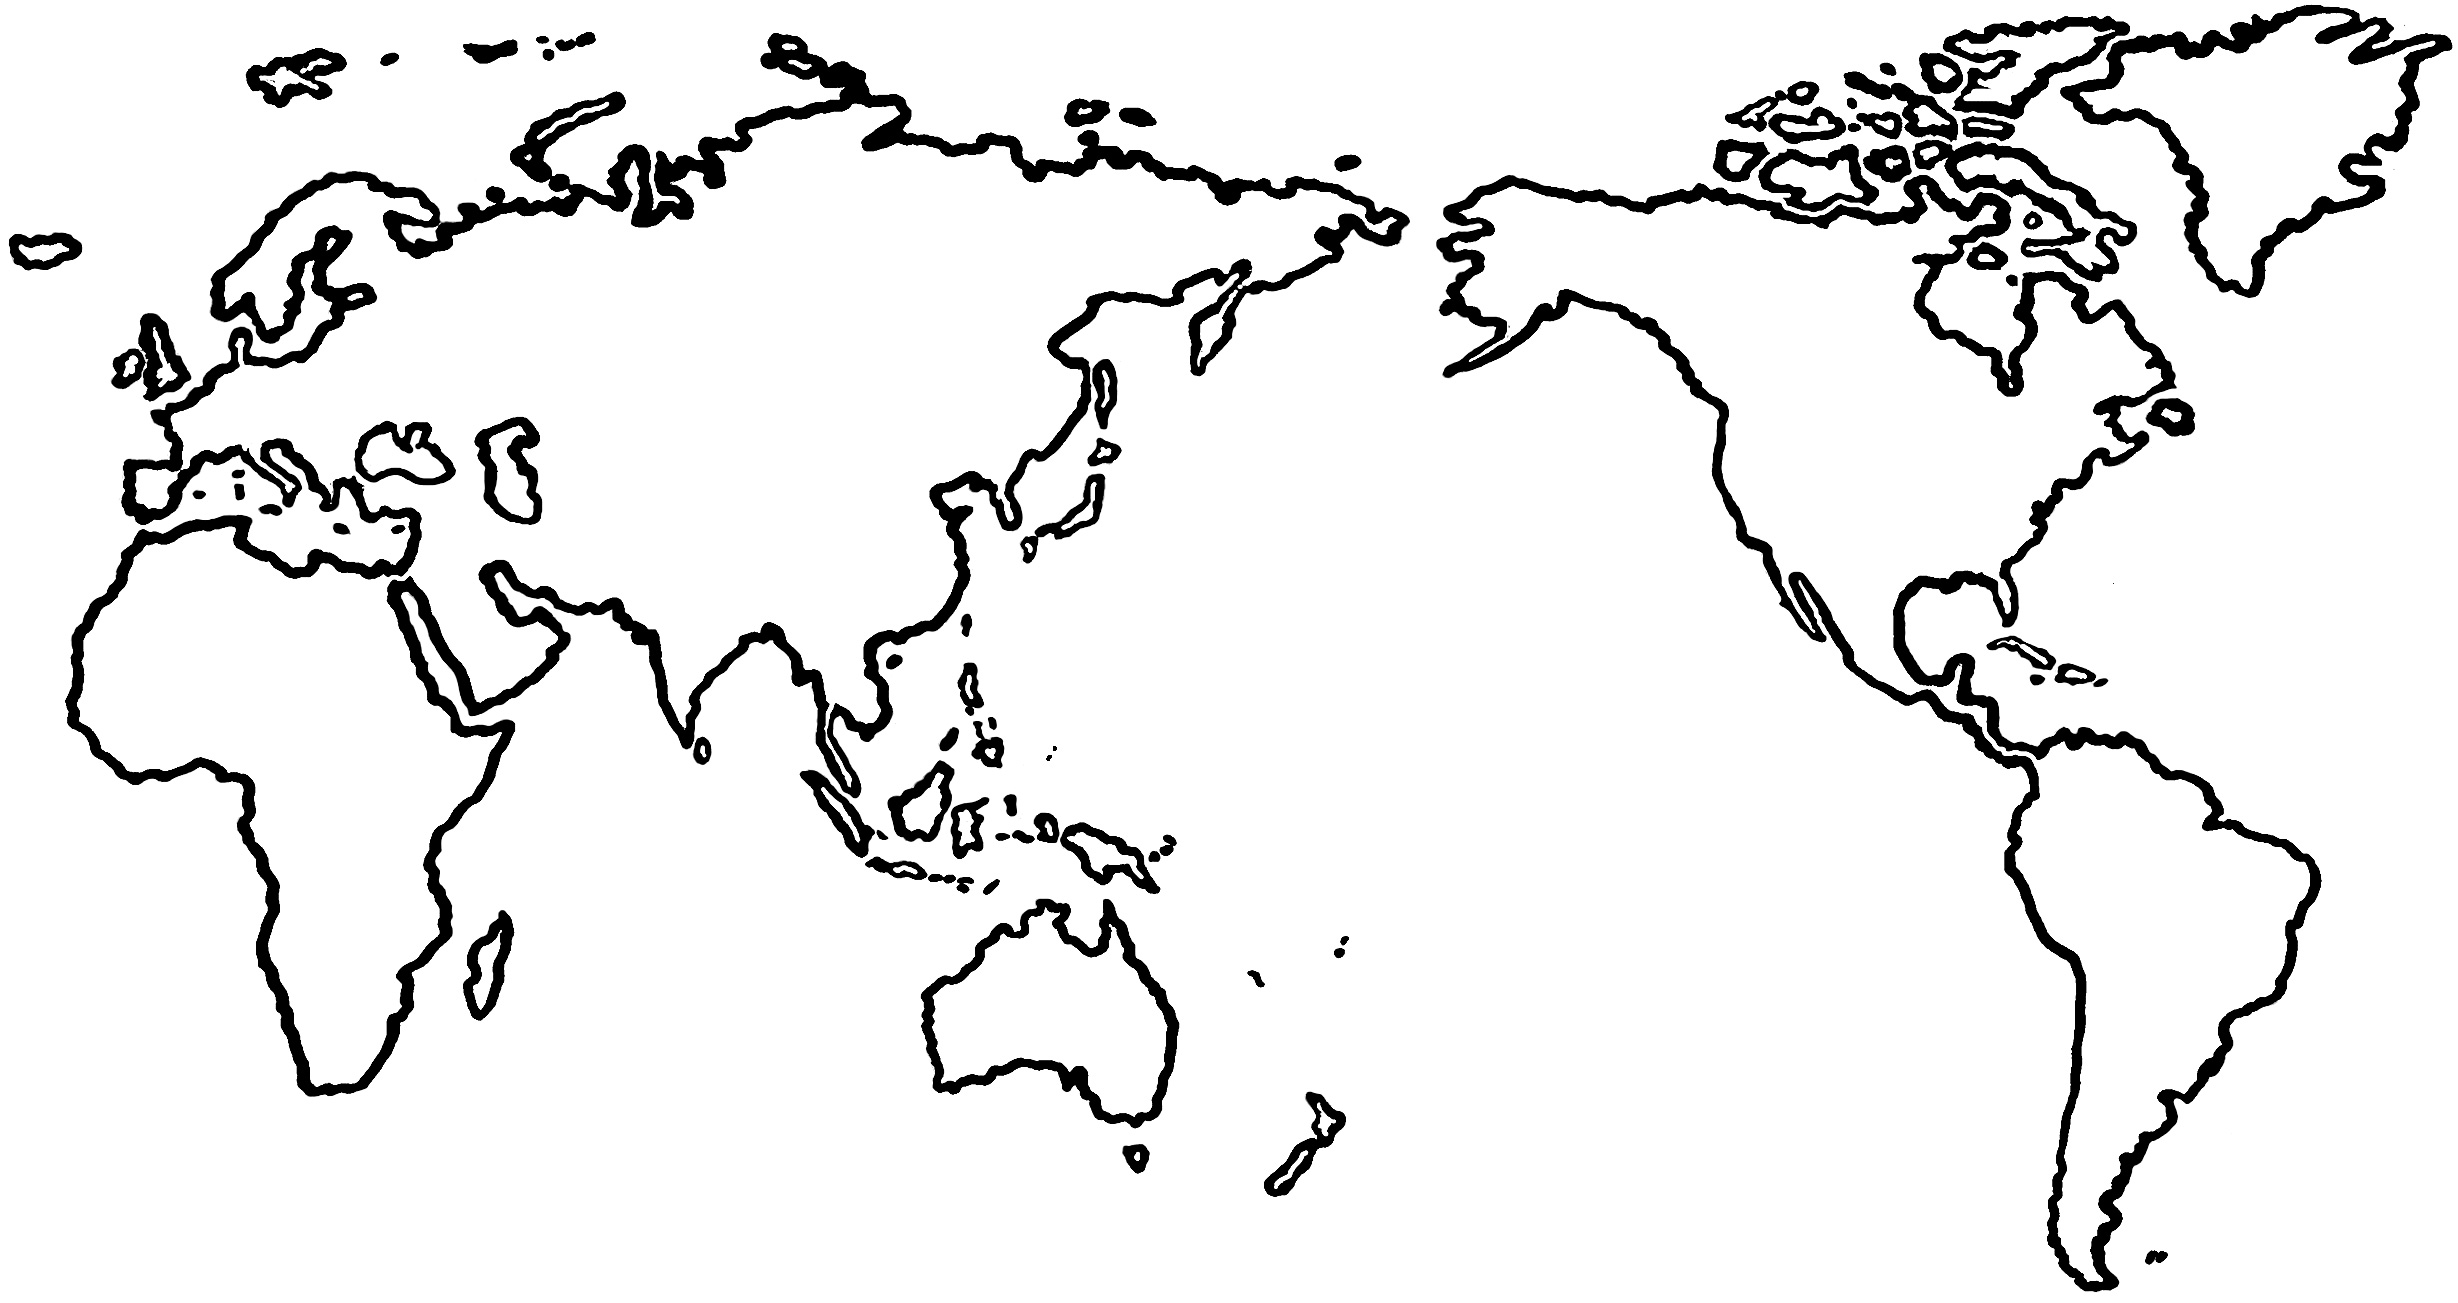 World map templates acurnamedia world map templates gumiabroncs Choice Image